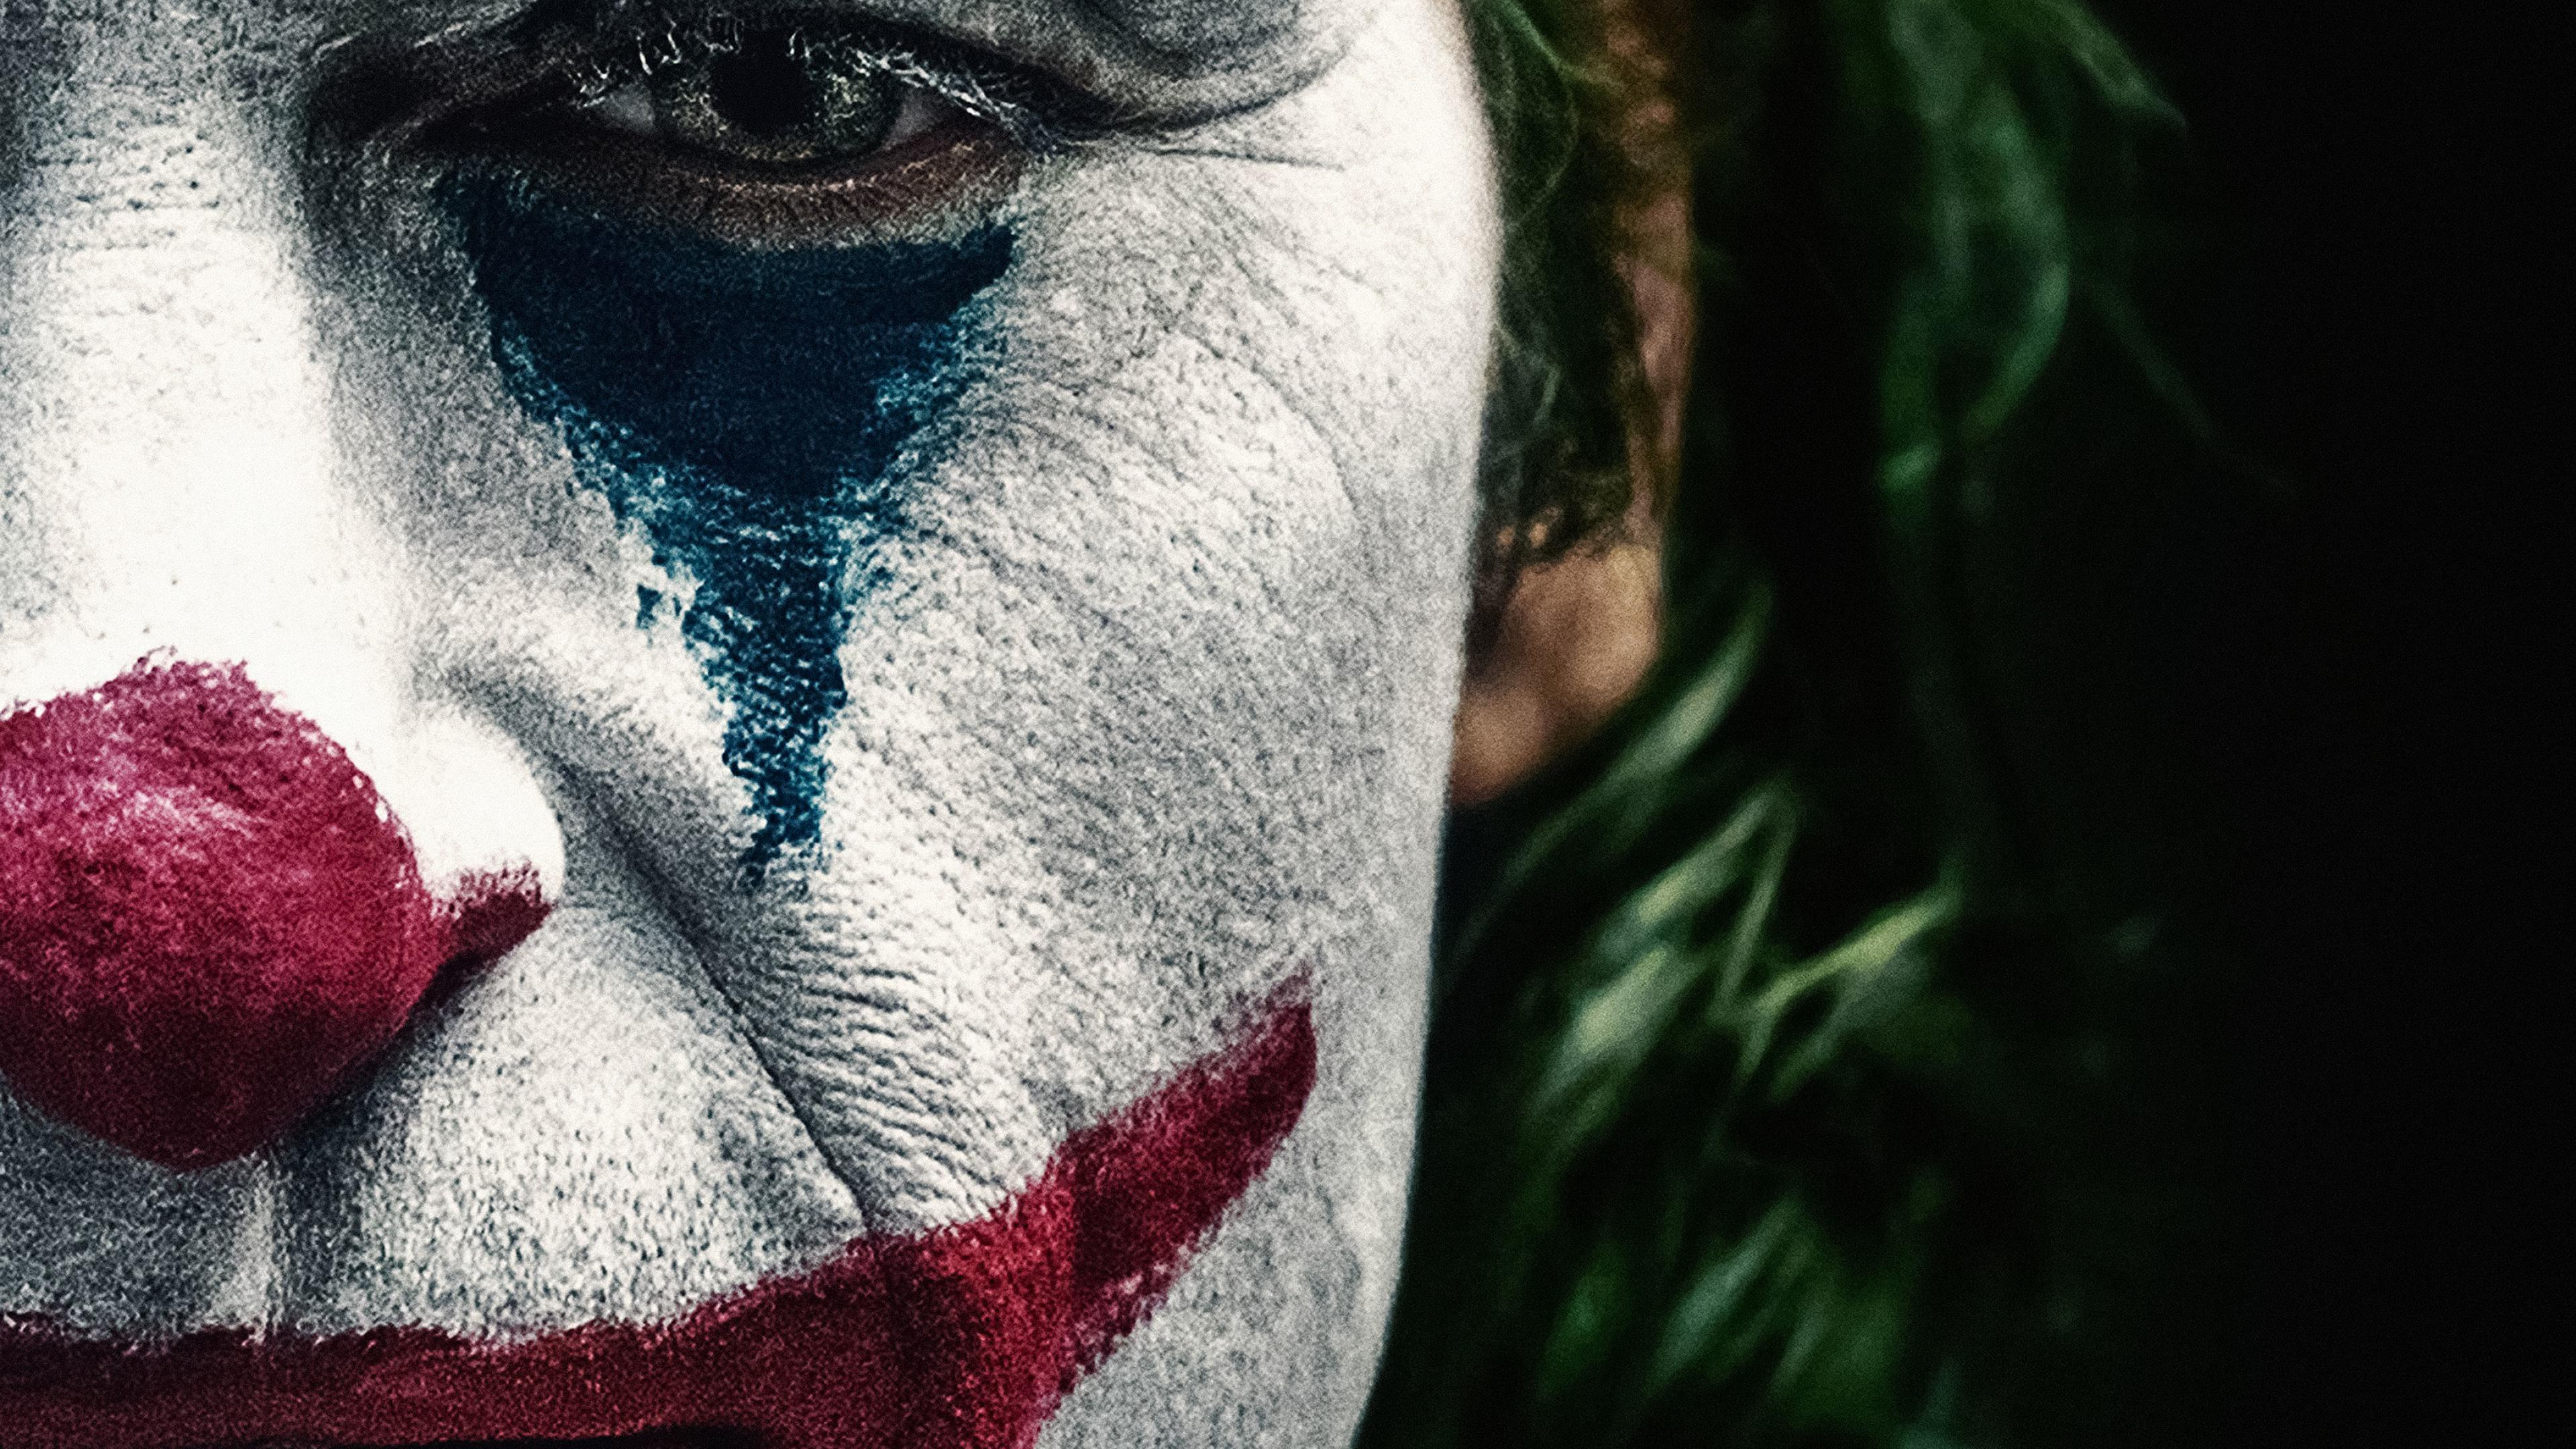 3840x2160 Joker 2019 4K Wallpaper, HD Movies 4K Wallpapers